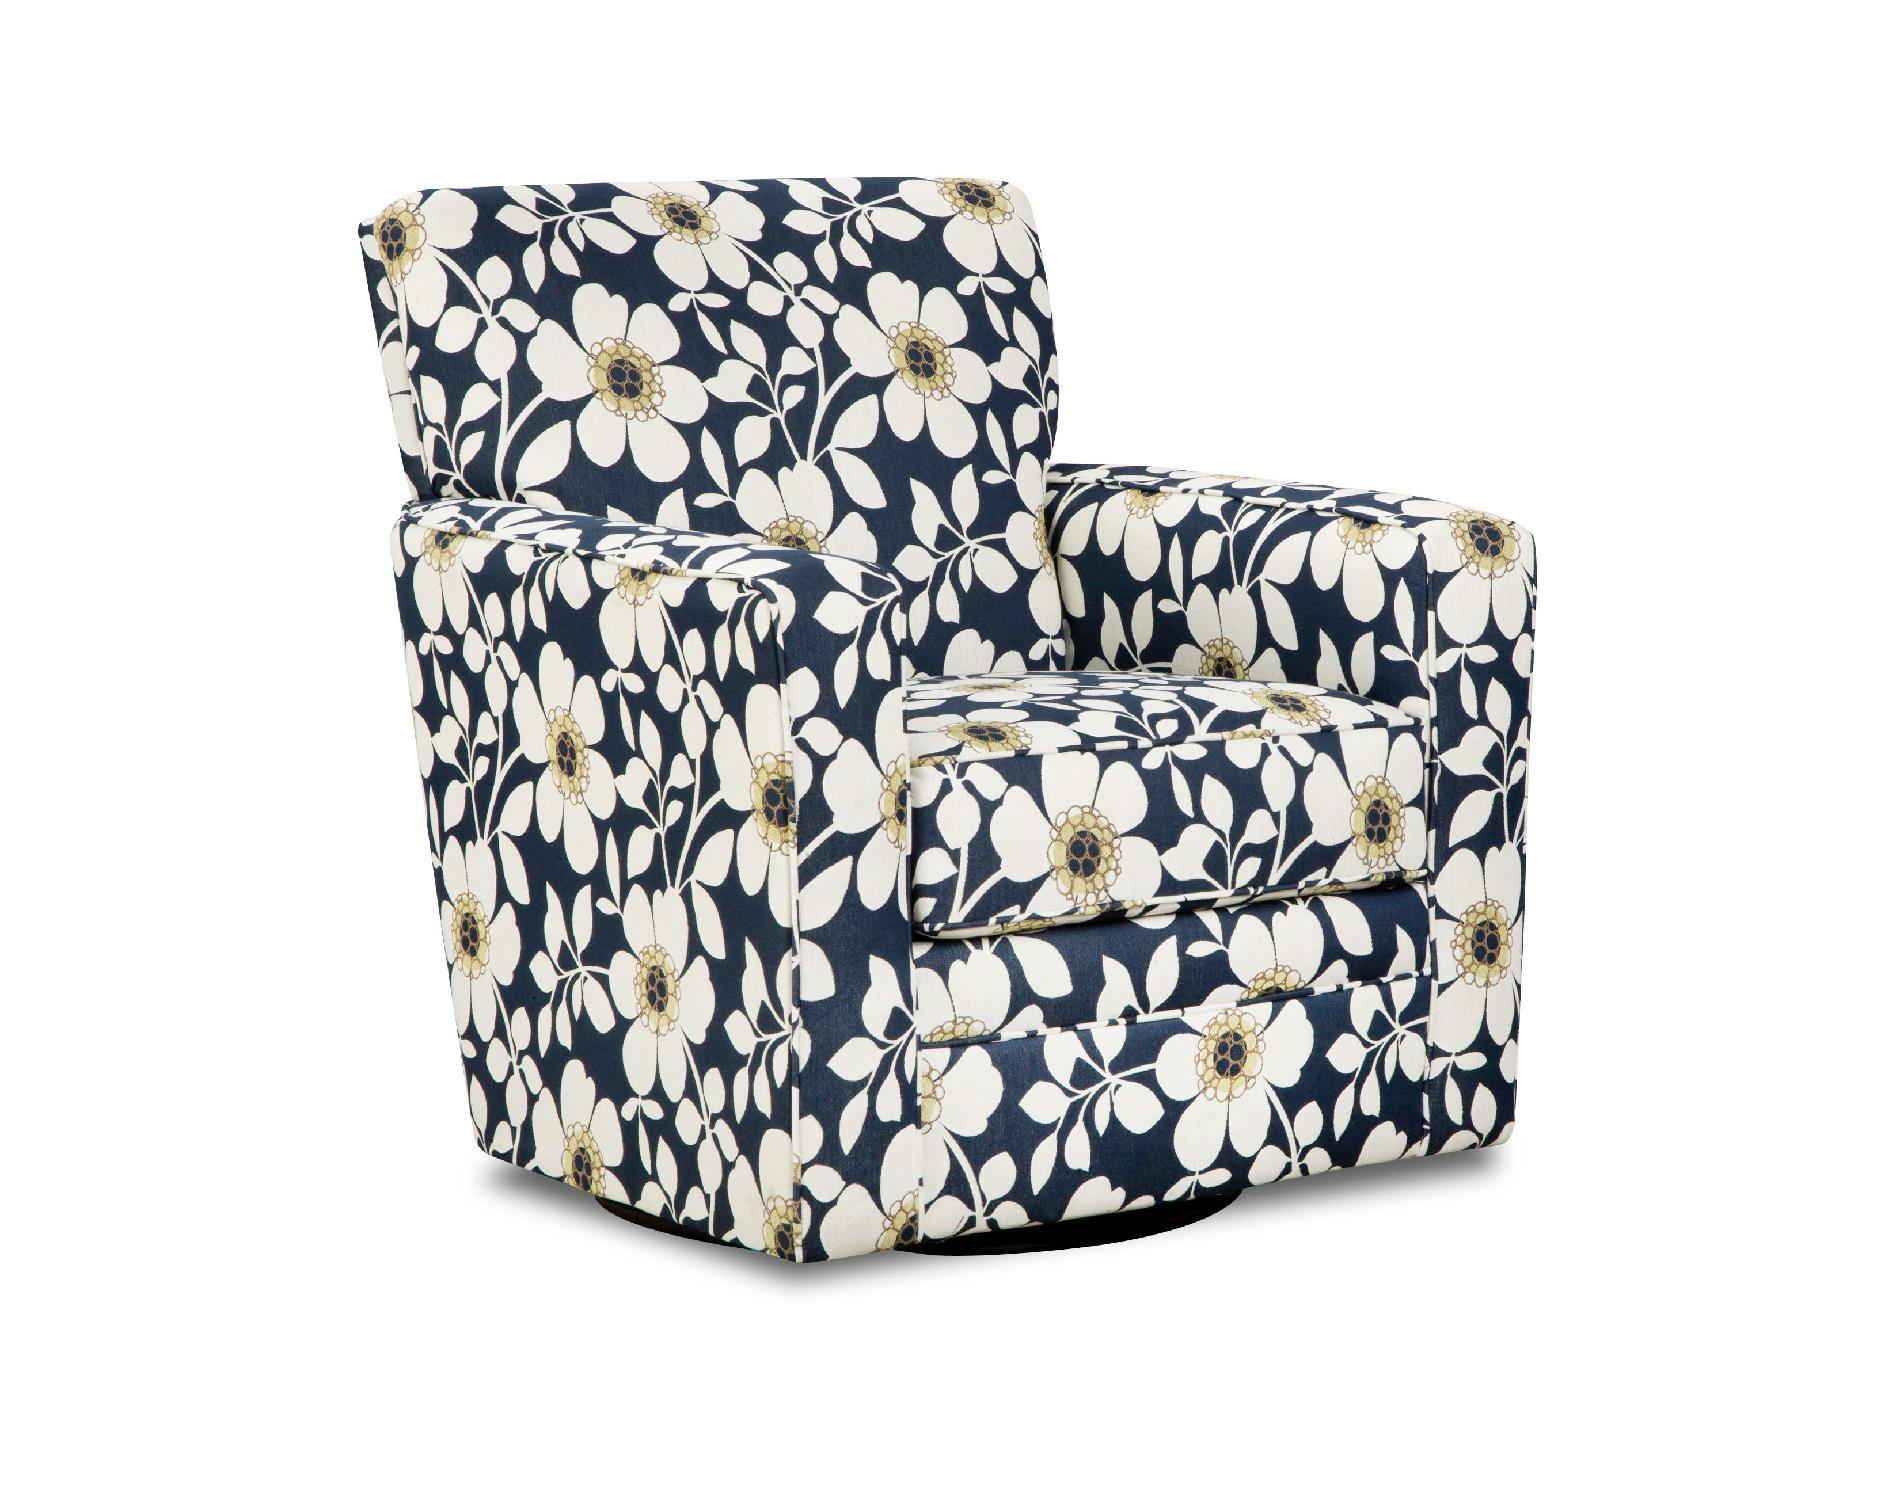 Floral Chair Simmons Upholstery Floral Print Chicklet Upholstered